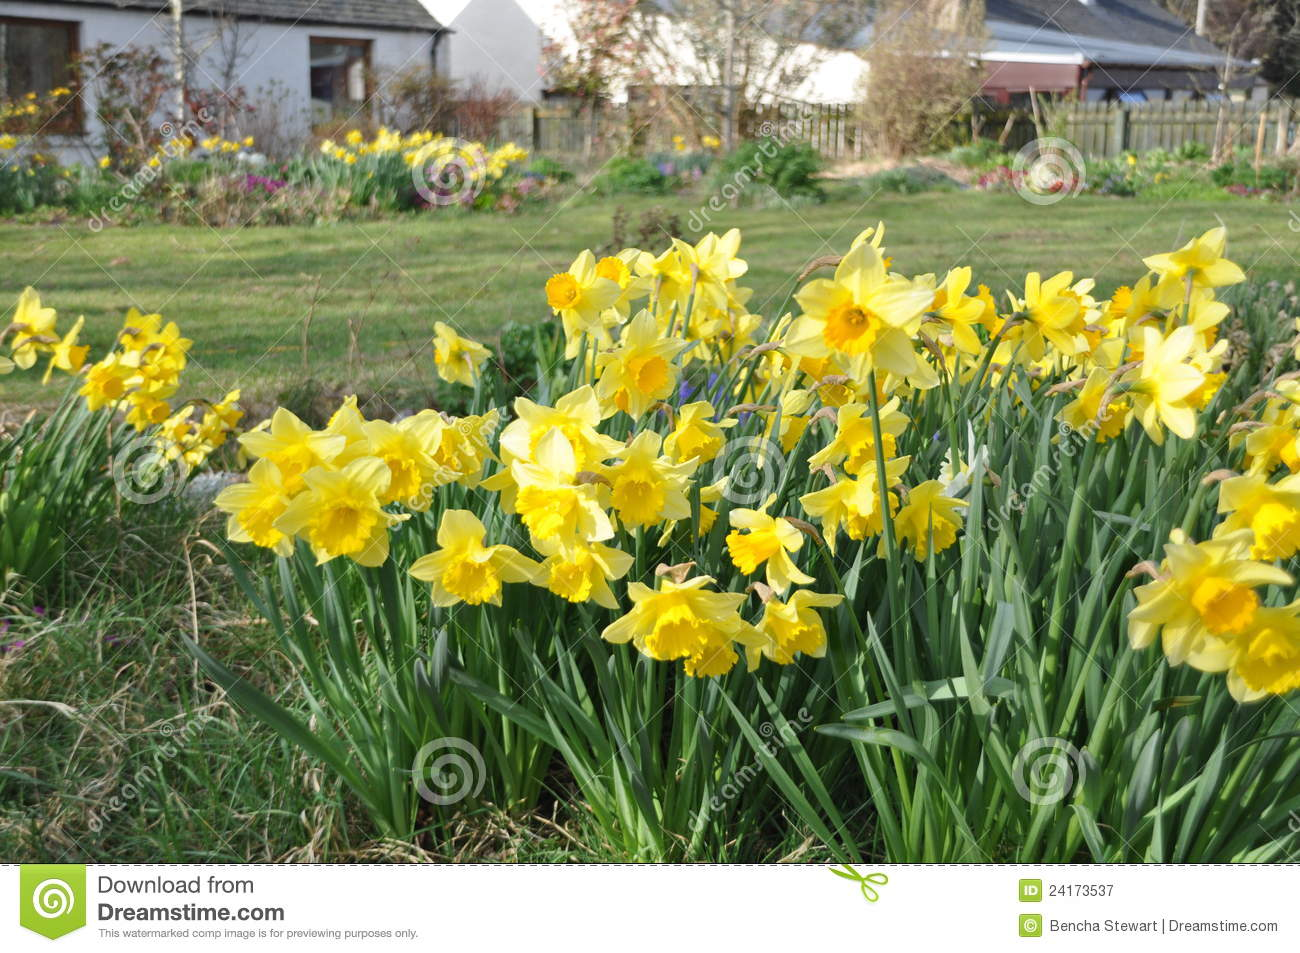 A Widely Grown Daffodil In The Garden Stock Image Image Of Petals